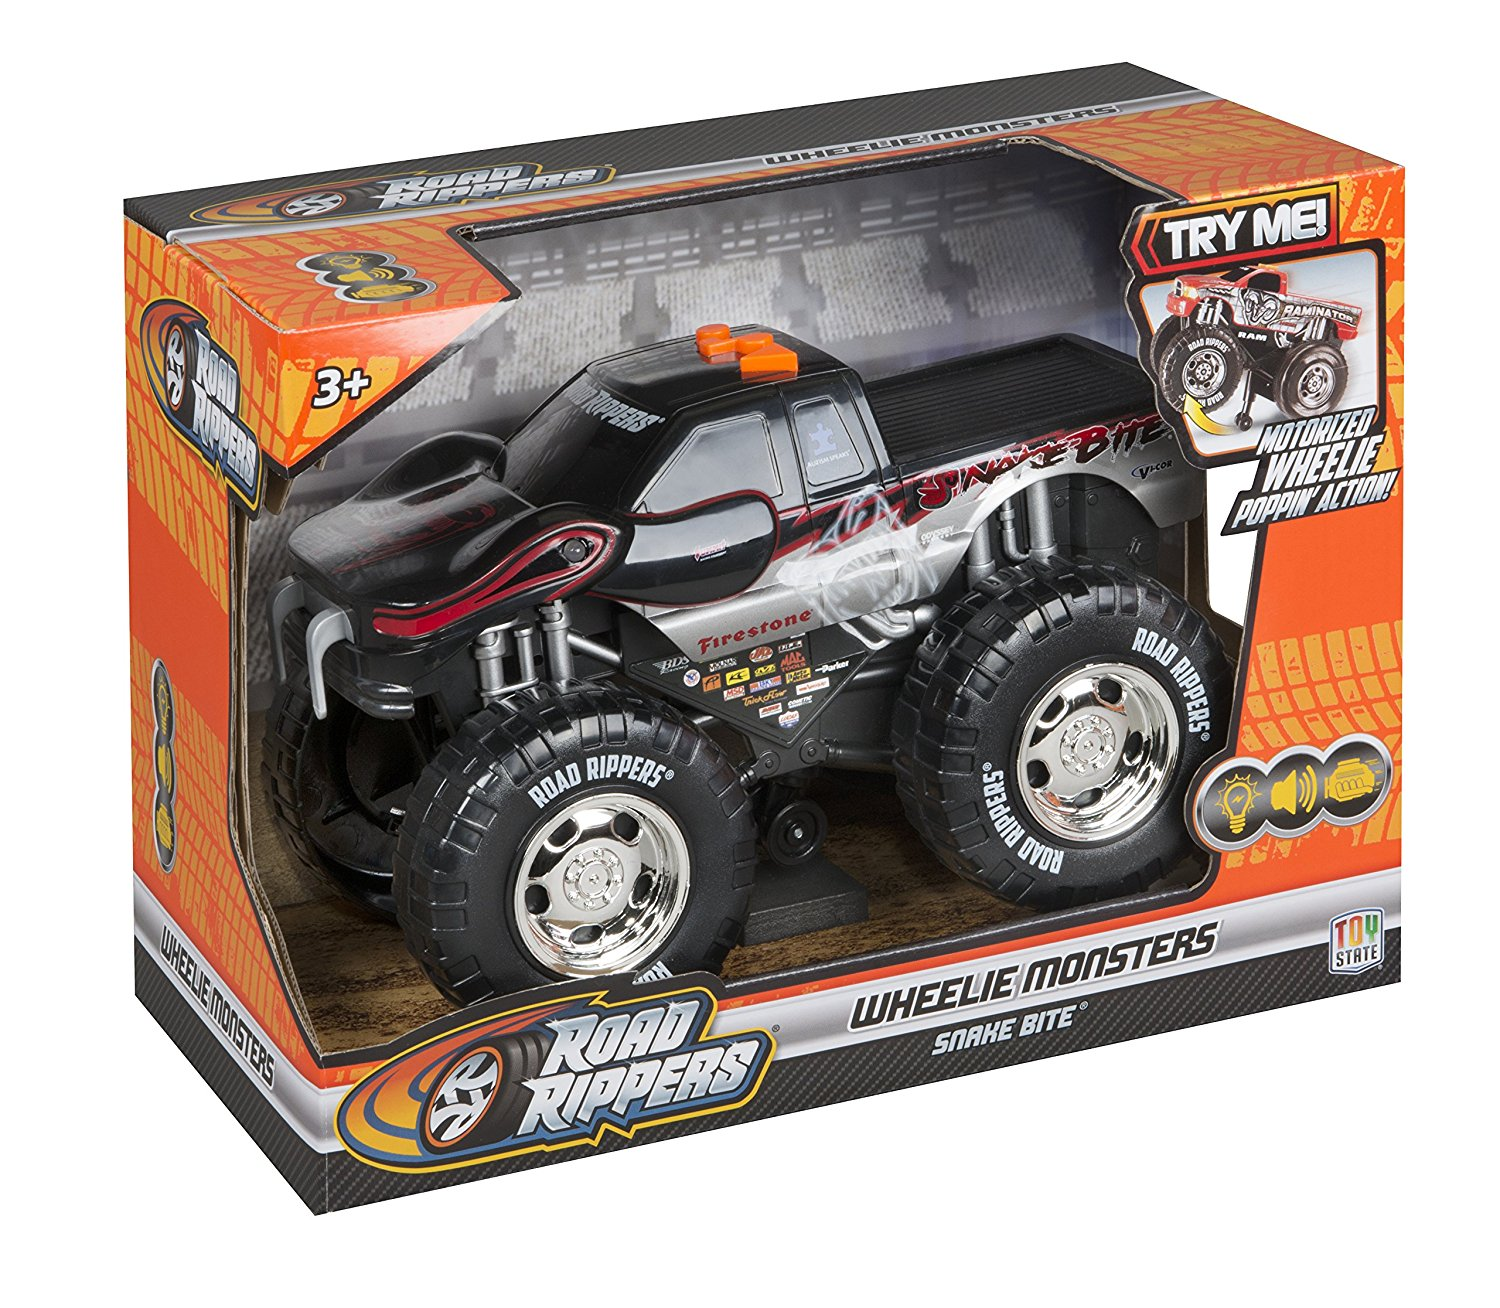 toy state road rippers light and sound wheelie monsters